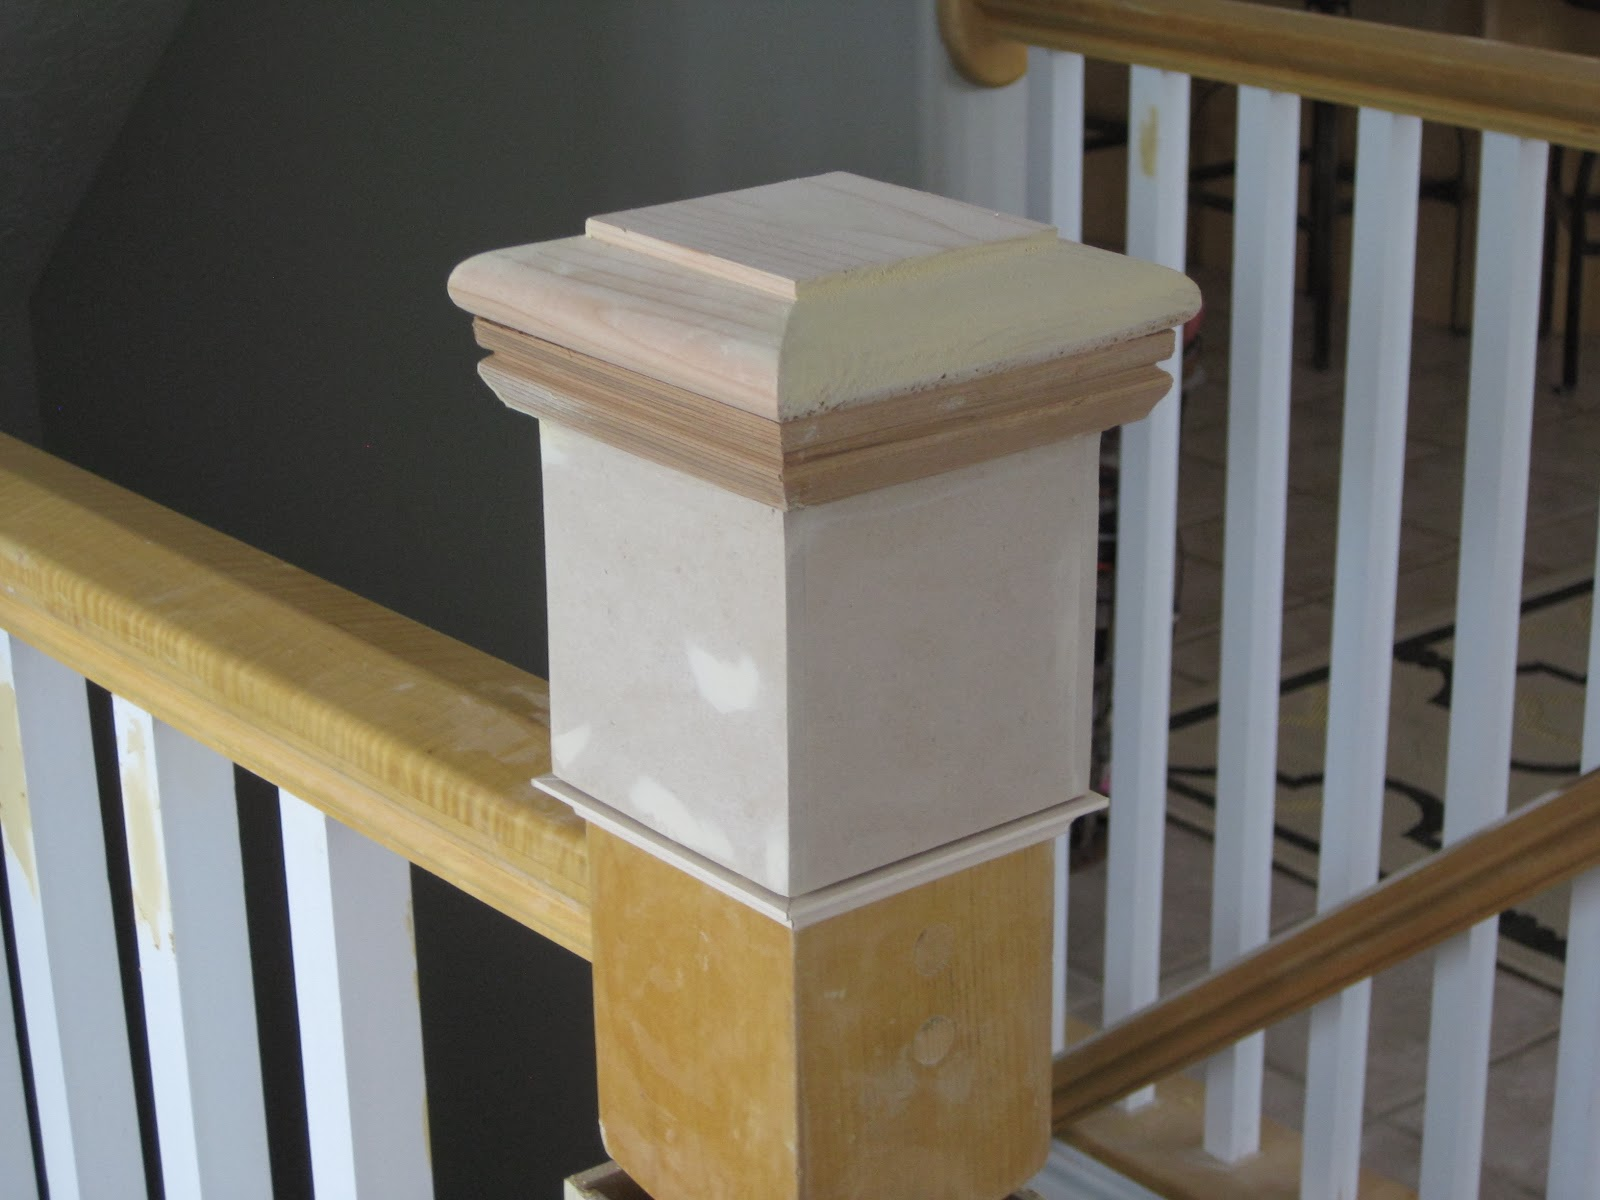 Newel Post Diy Tda Decorating And Design Featured On Remodelaholic